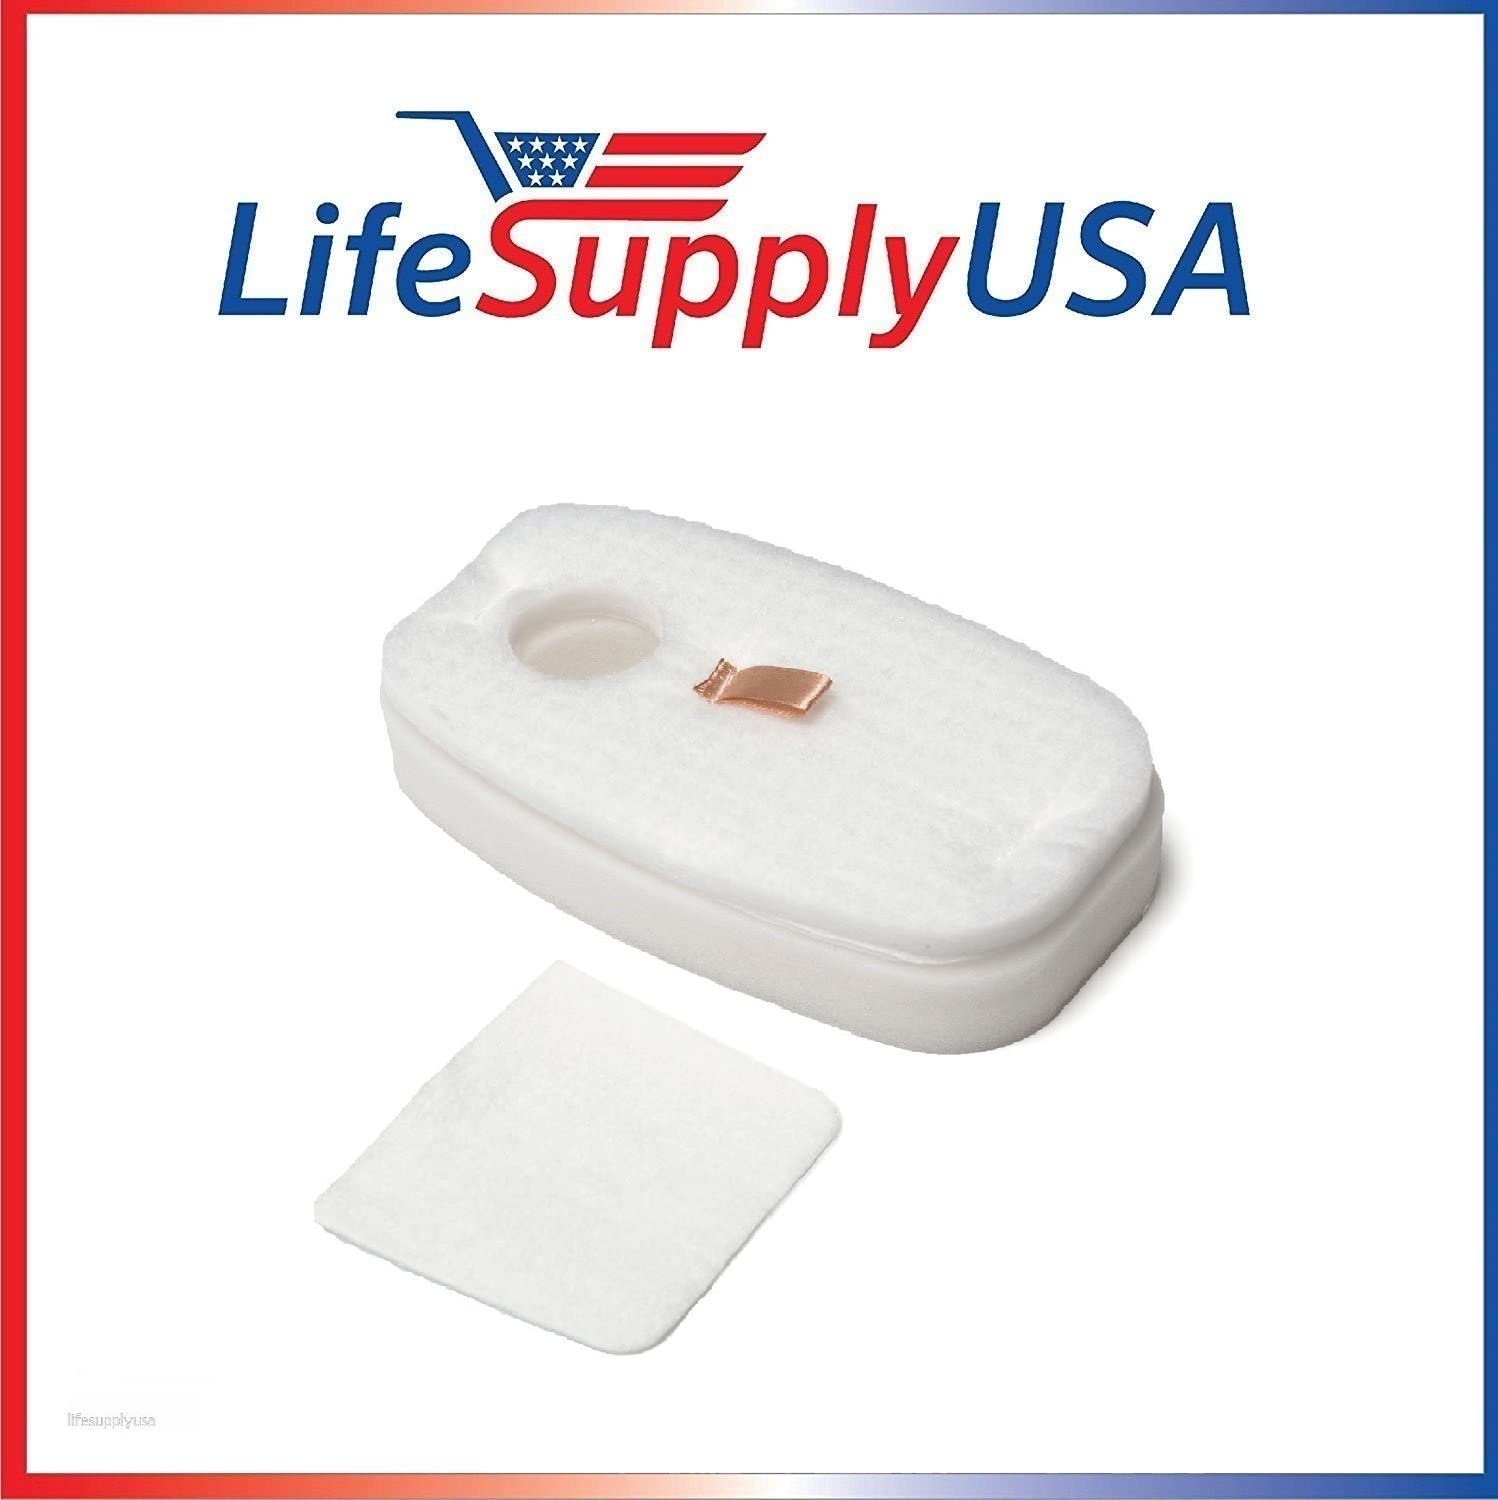 LifeSupplyUSA Foam and Felt Filter kits (50) Compatible with Shark Rocket Deluxe Pro, TruePet, HV320 & HV319Q Model Vacuum Cleaners part #s 1080FTV320 & 1084FTV320 (50 Sets) 71A2cE1OnqLSL1500_